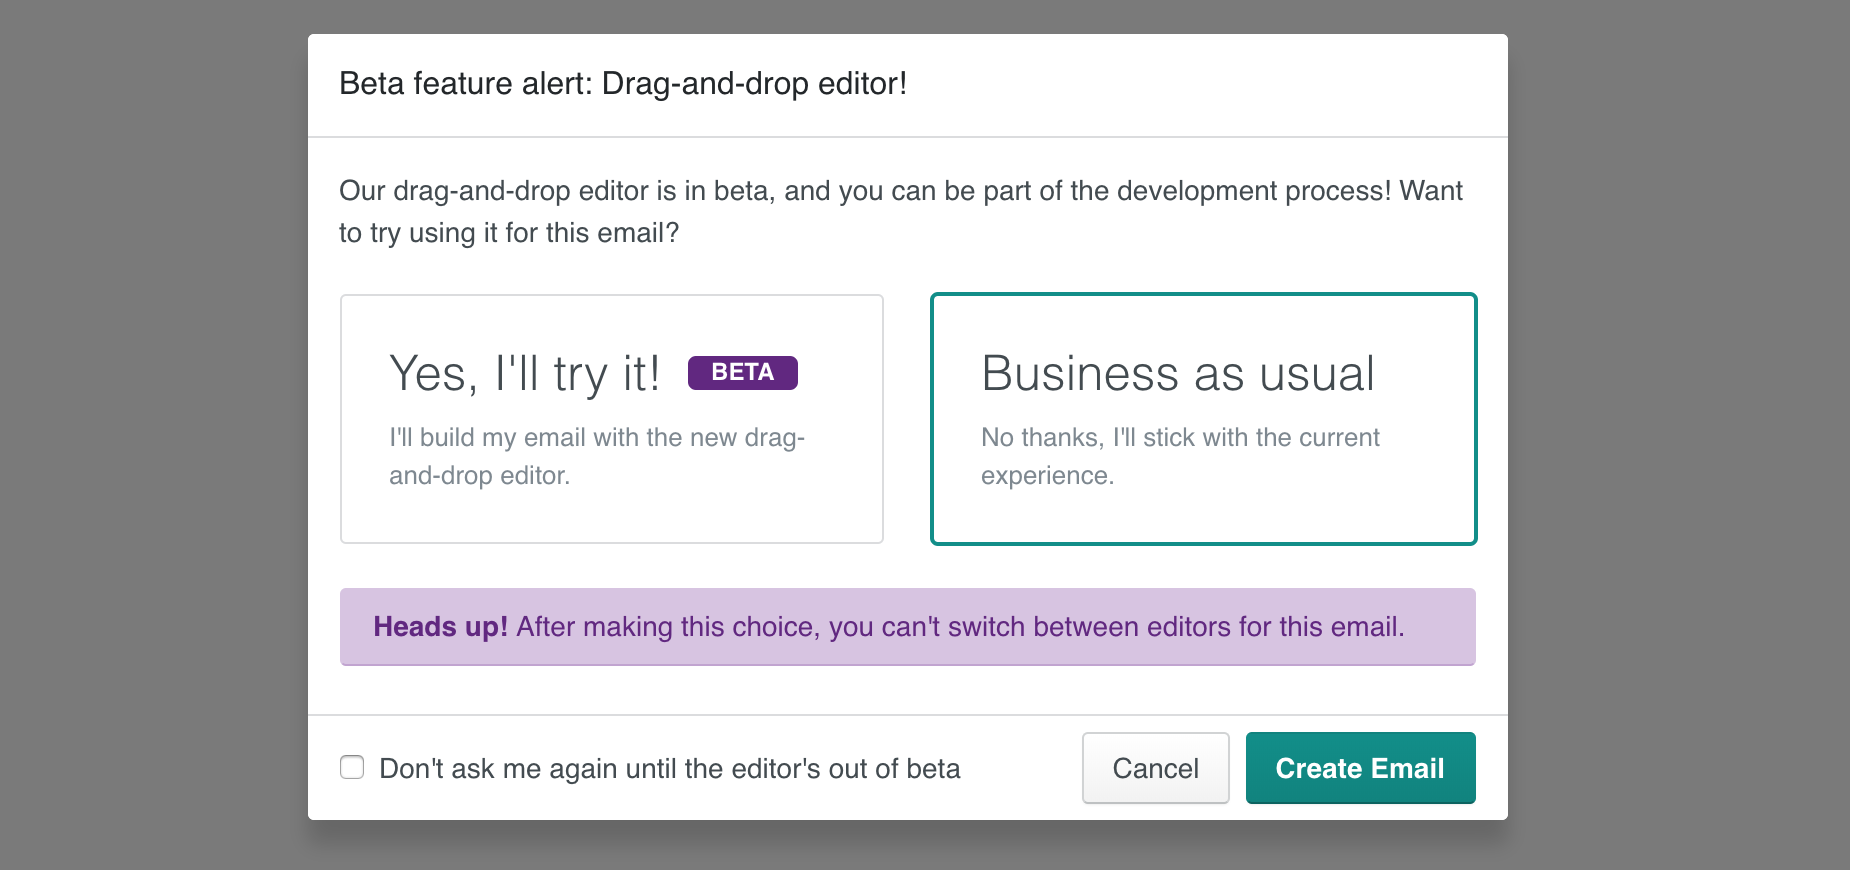 Beta feature alert: Drag-and-drop editor! - Customer io